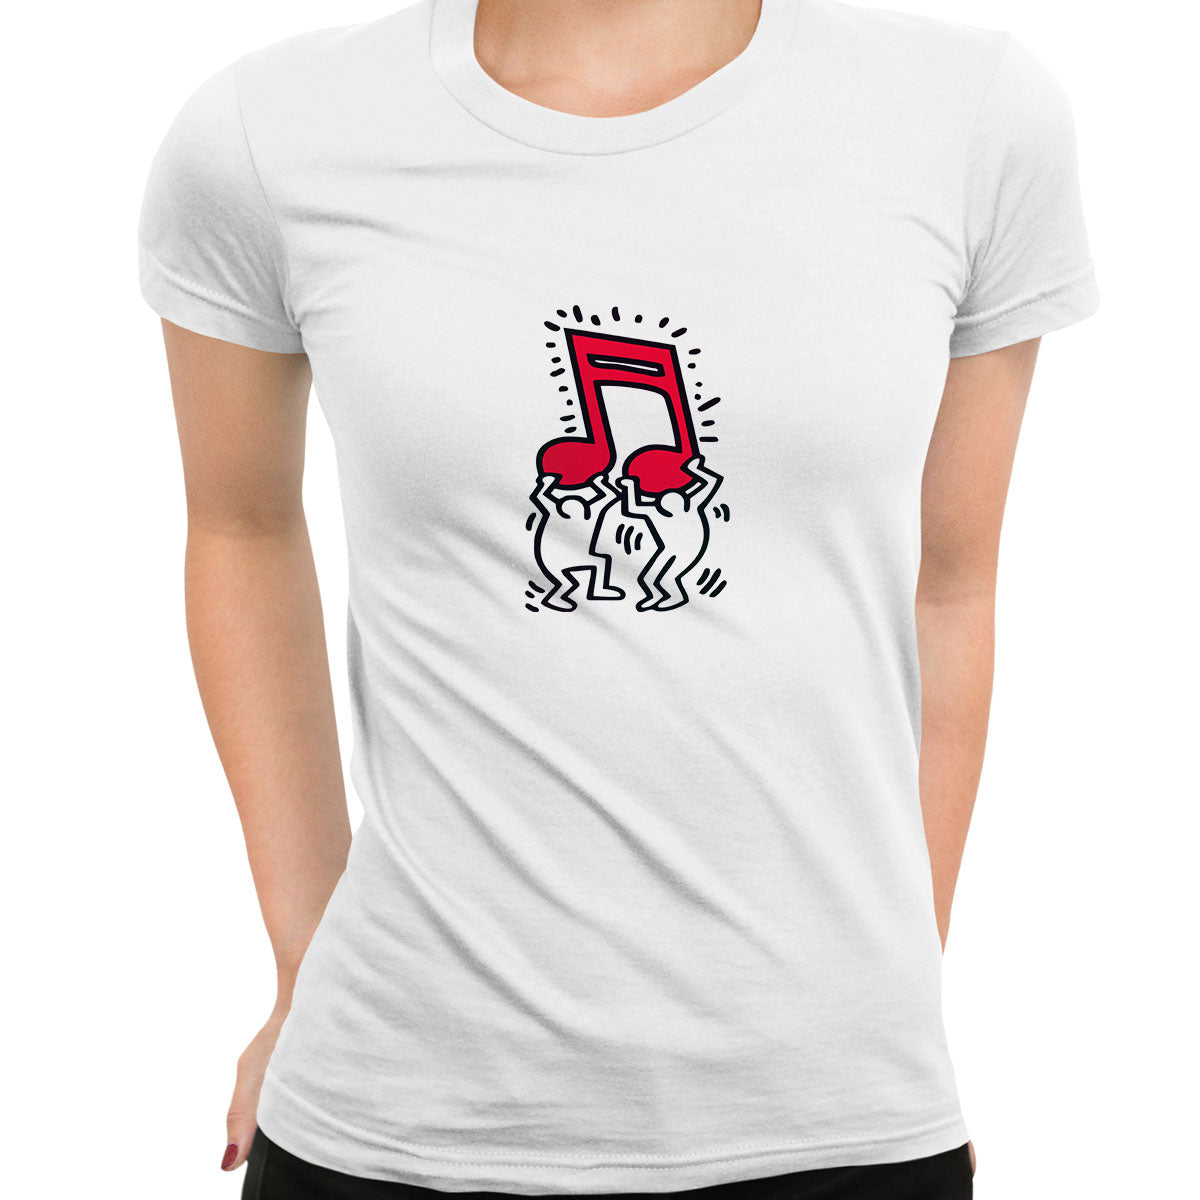 Keith Haring - Music Talking Heads Abstract Pop Art White T-Shirt for Women